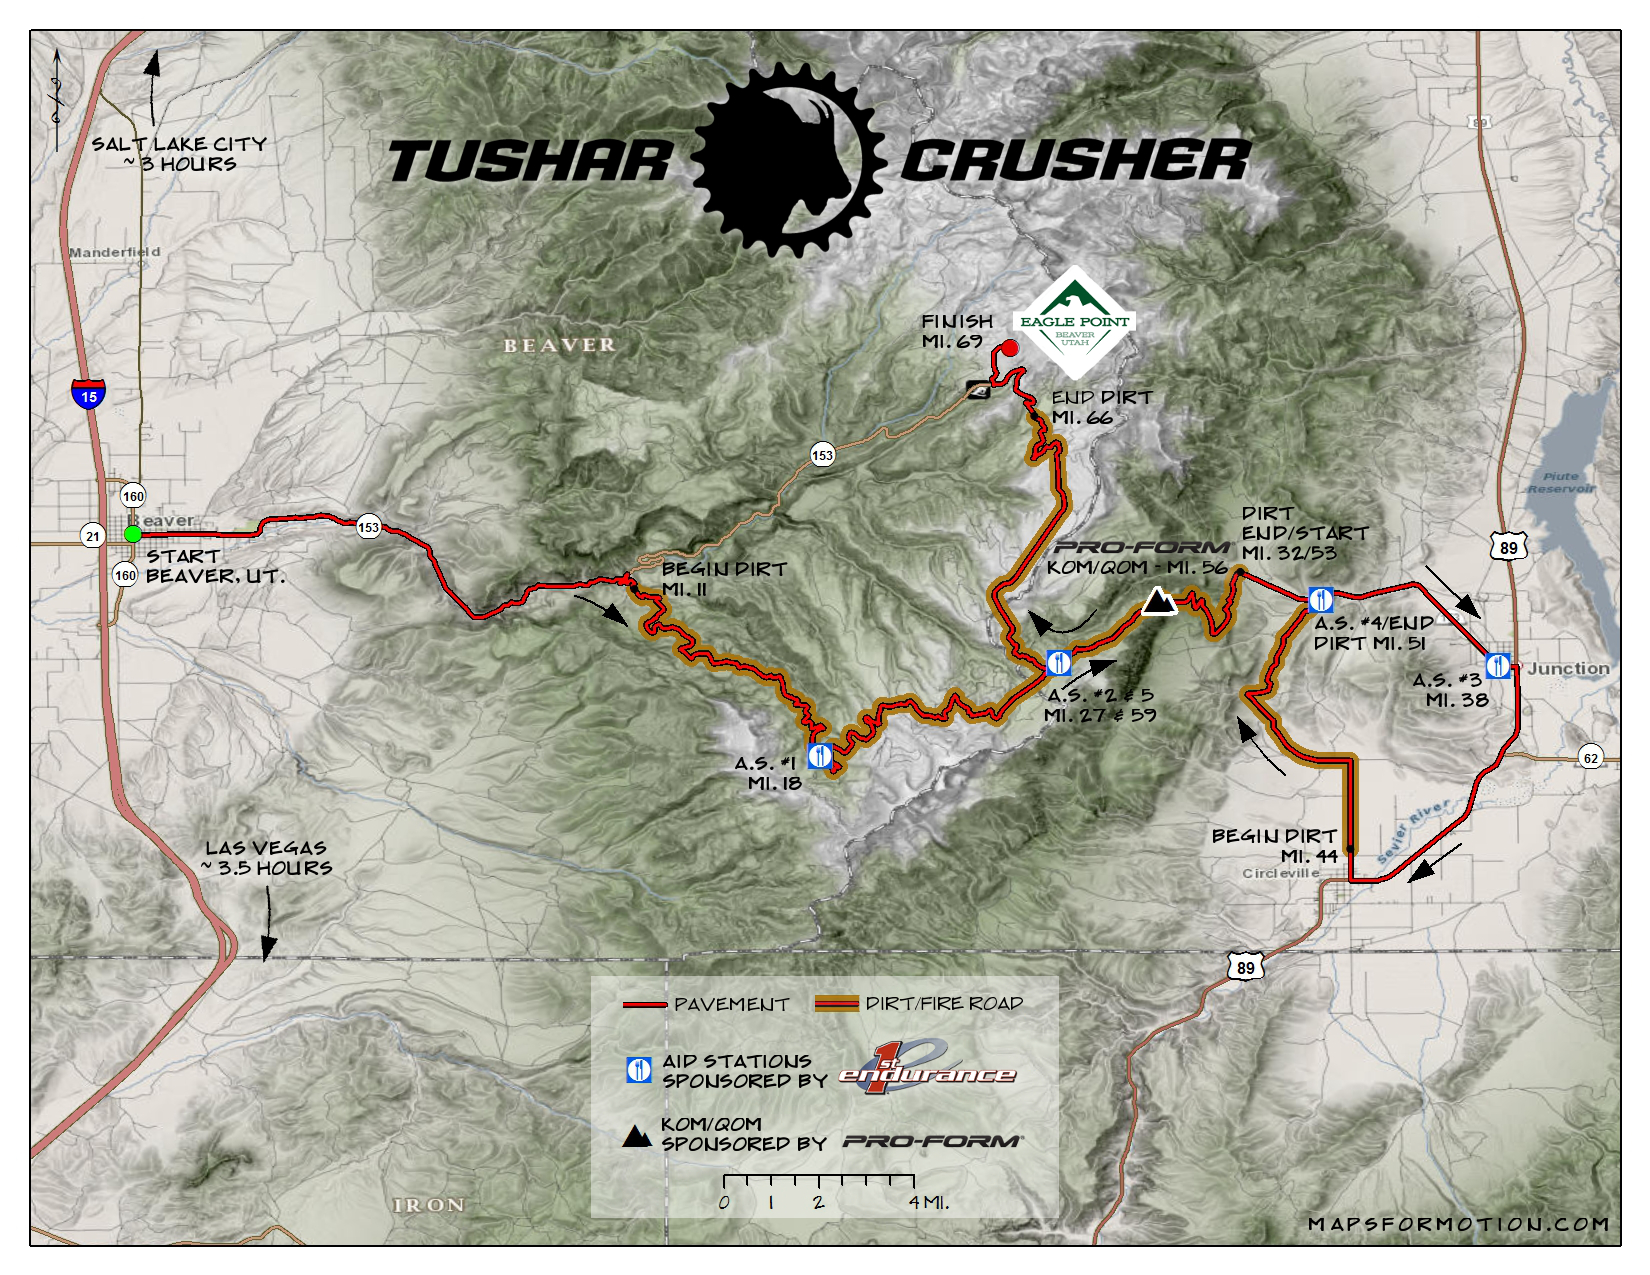 Course Map and Description | Crusher in the Tushar | road + dirt